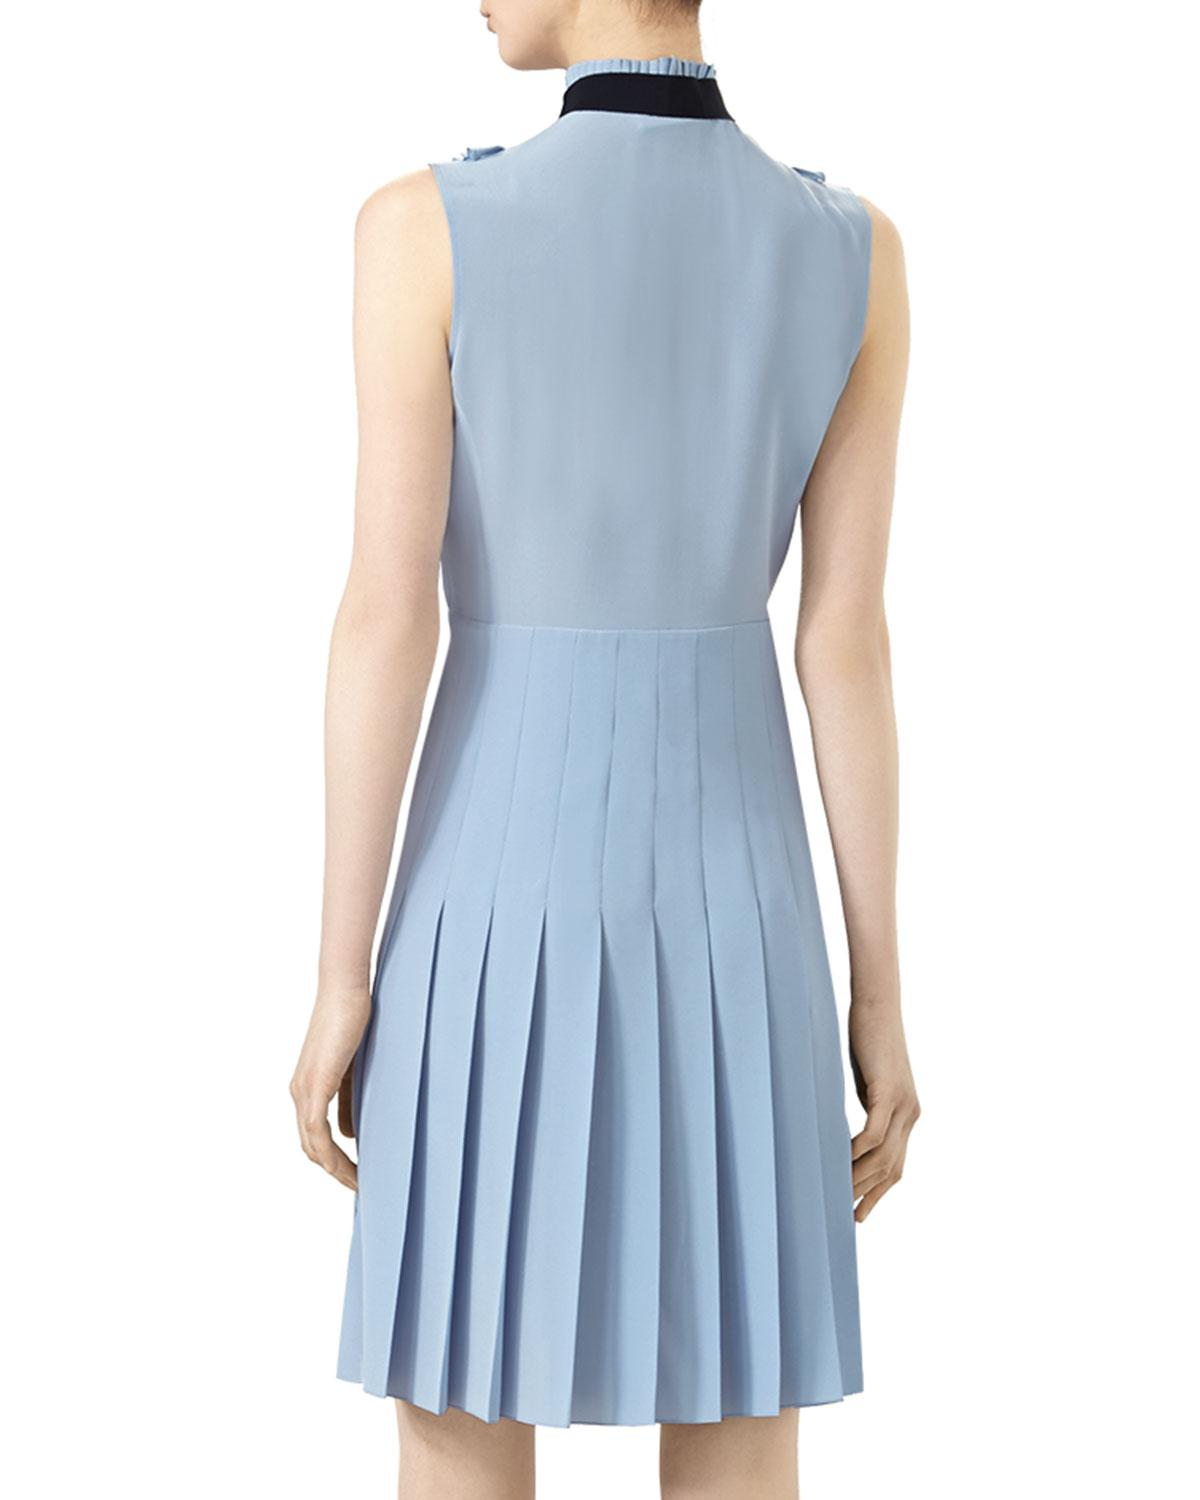 Lyst - Gucci Sleeveless Pleated Dress in Blue